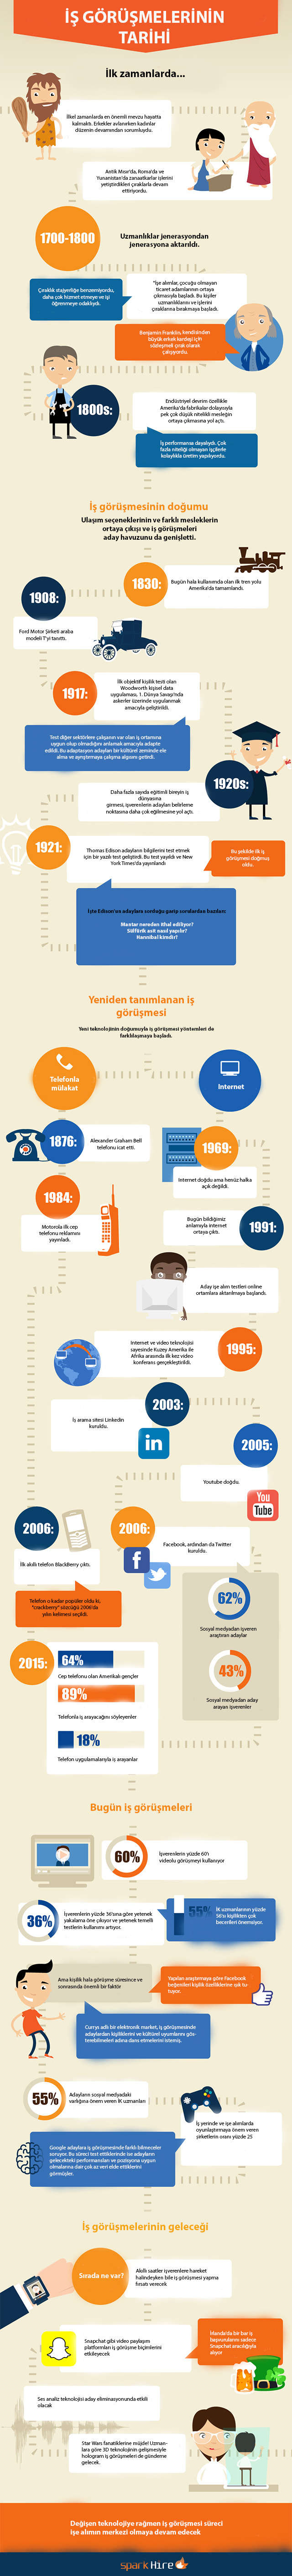 The-Evolution-of-the-Job-Interview-Infographic